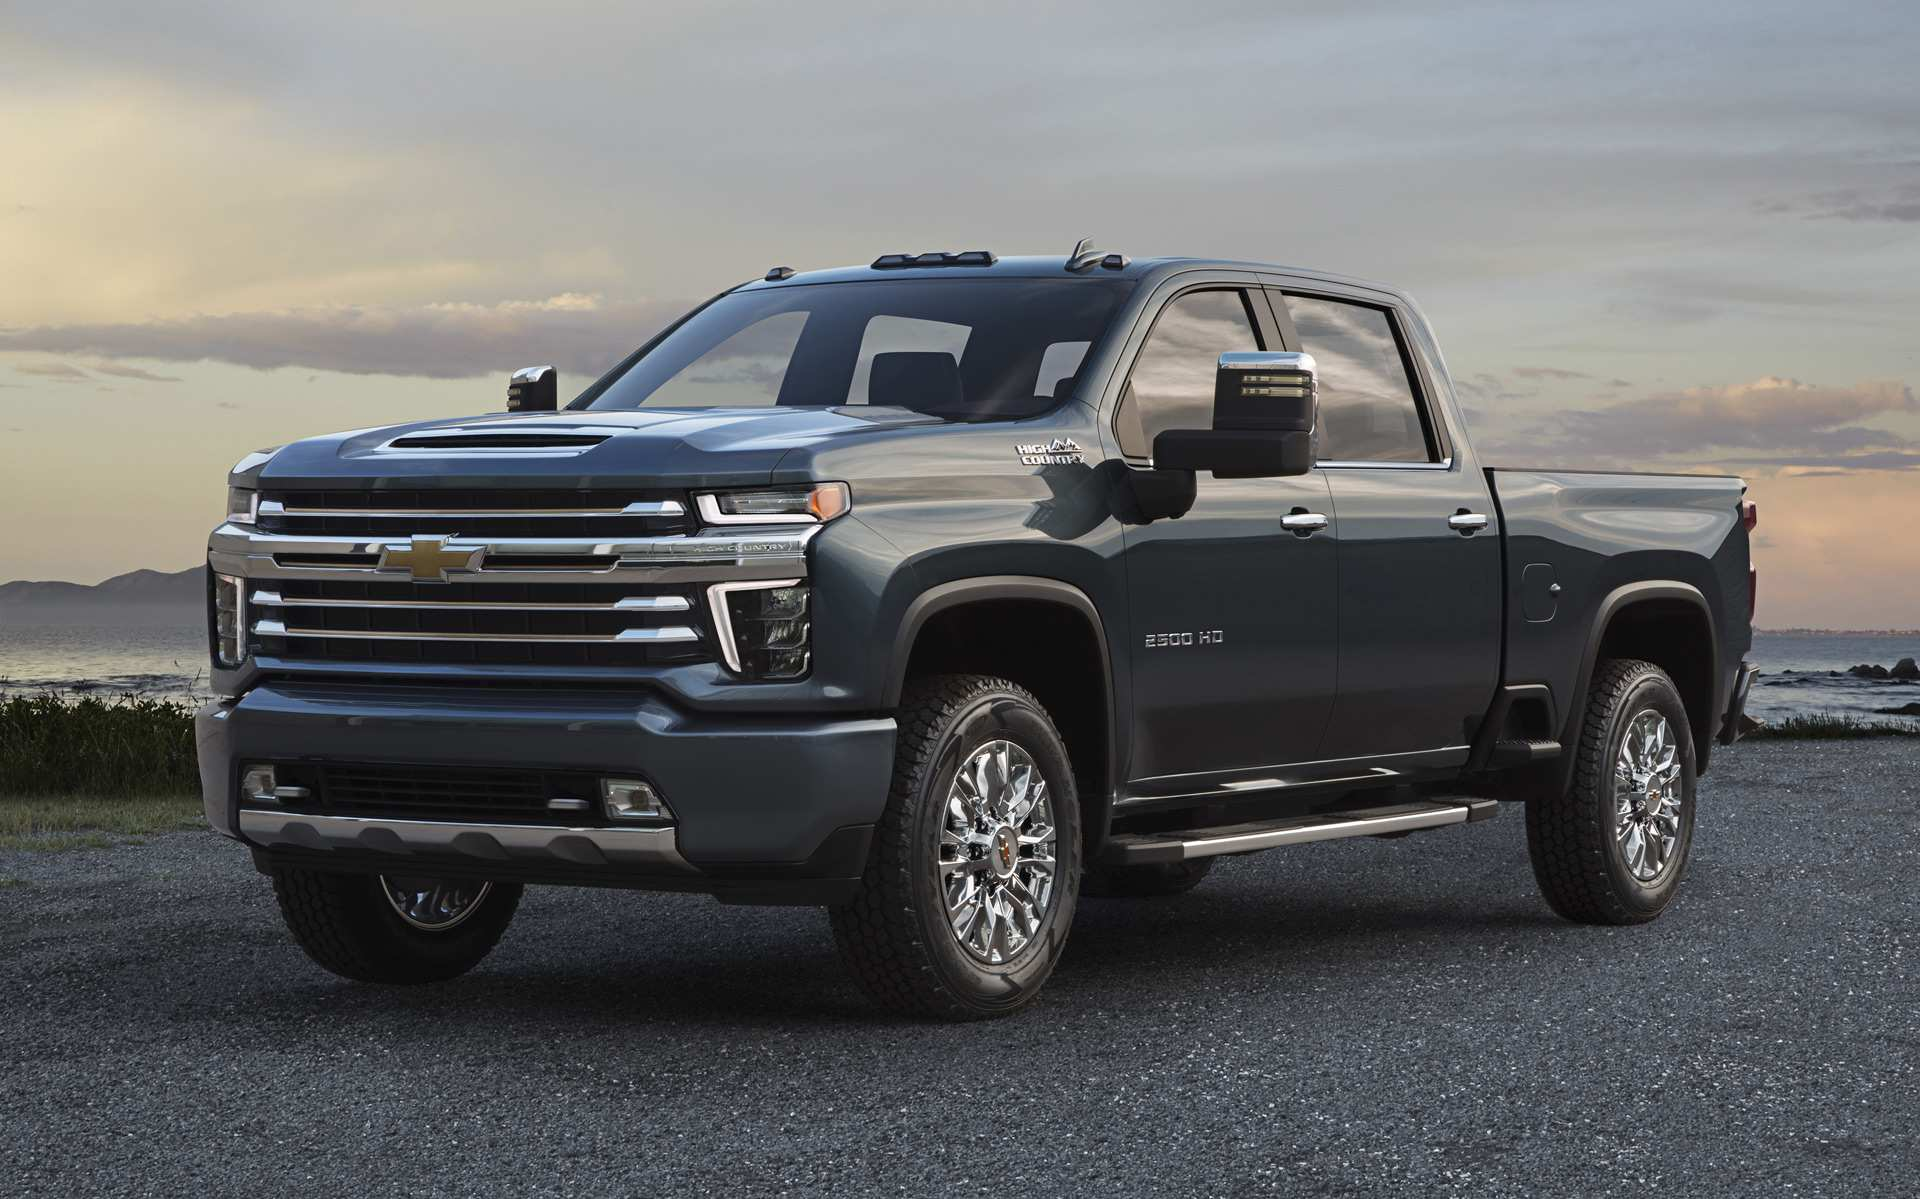 67 New 2020 Chevrolet Silverado Price And Review